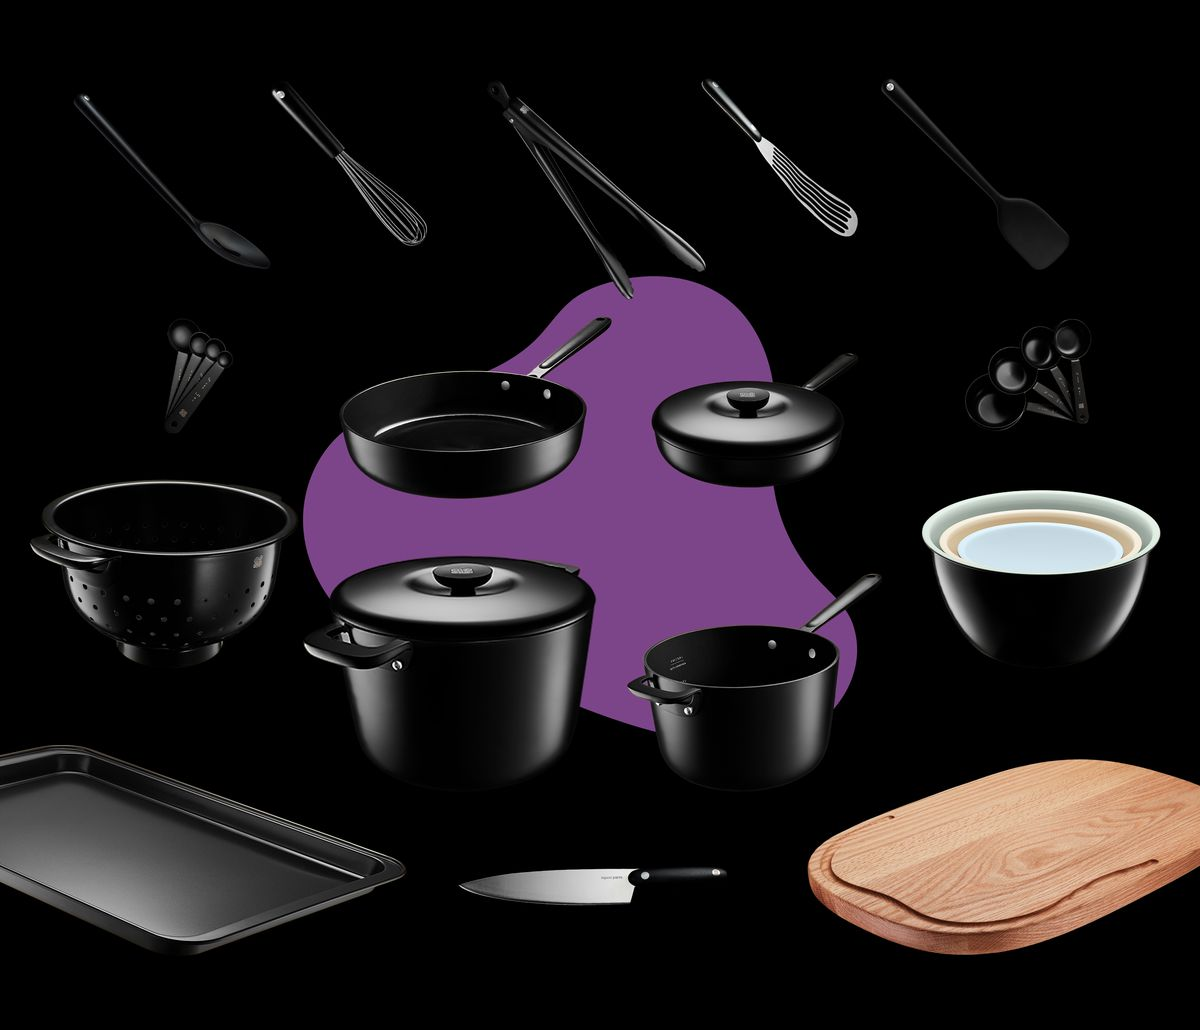 Over a dozen pieces of matte black cookware, like pots, pans and a spatula, scattered on a black background with a, abstract purple blob in the middle